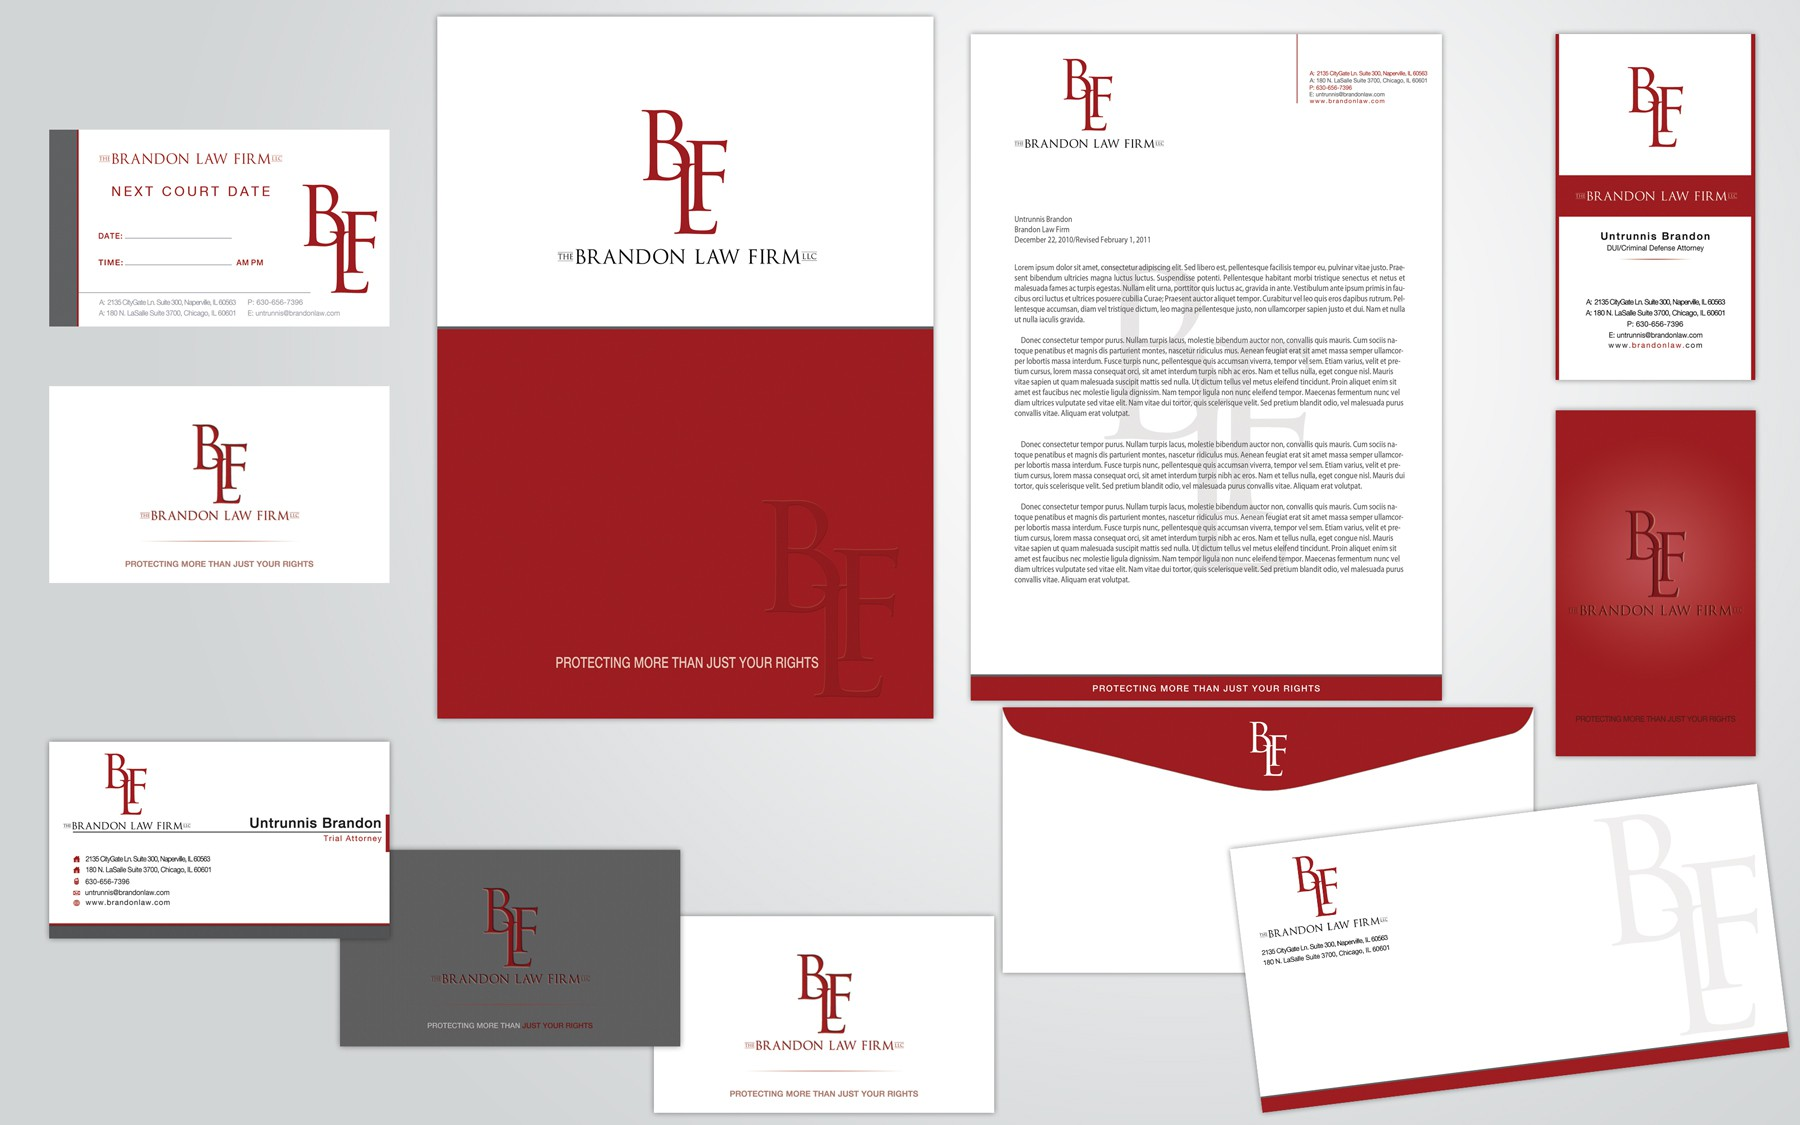 Create the next stationery for The Brandon Law Firm LLC